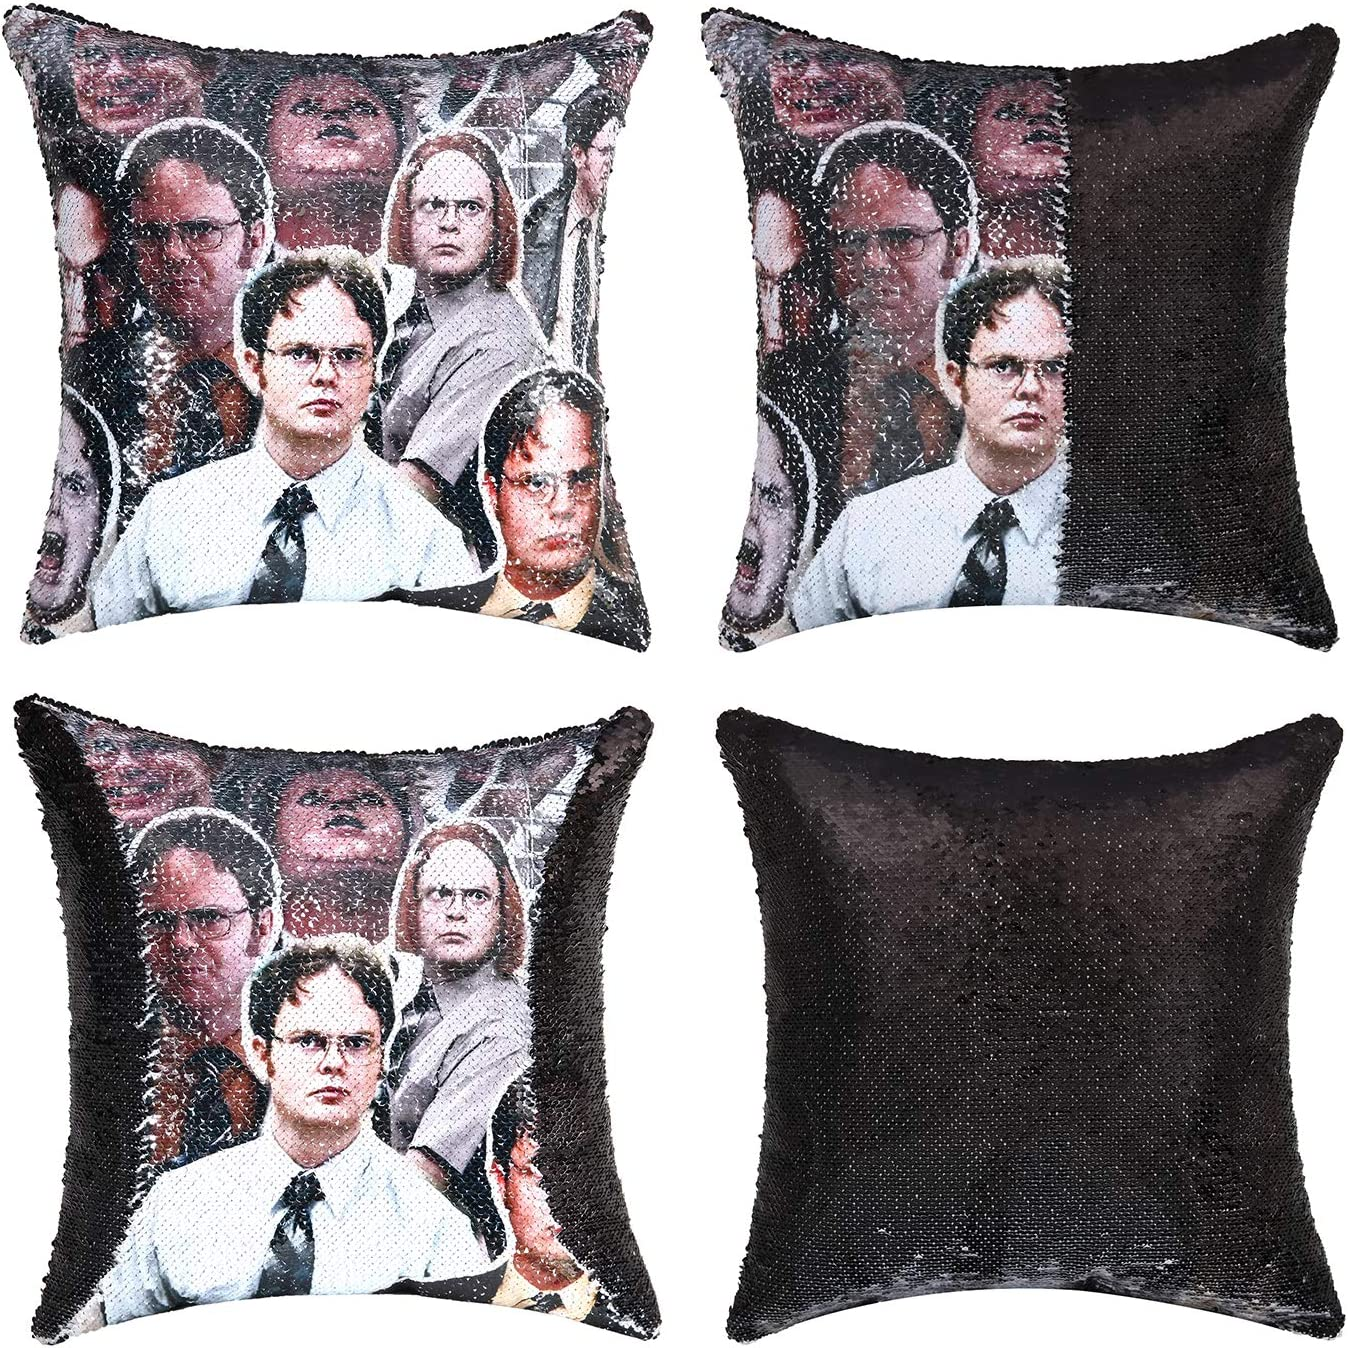 cygnus The Office Merch Dwight Schrute Sequin Pillow Cover Reversible Throw Pillowcase 16x16 inch Funny Gag Gifts for Adults